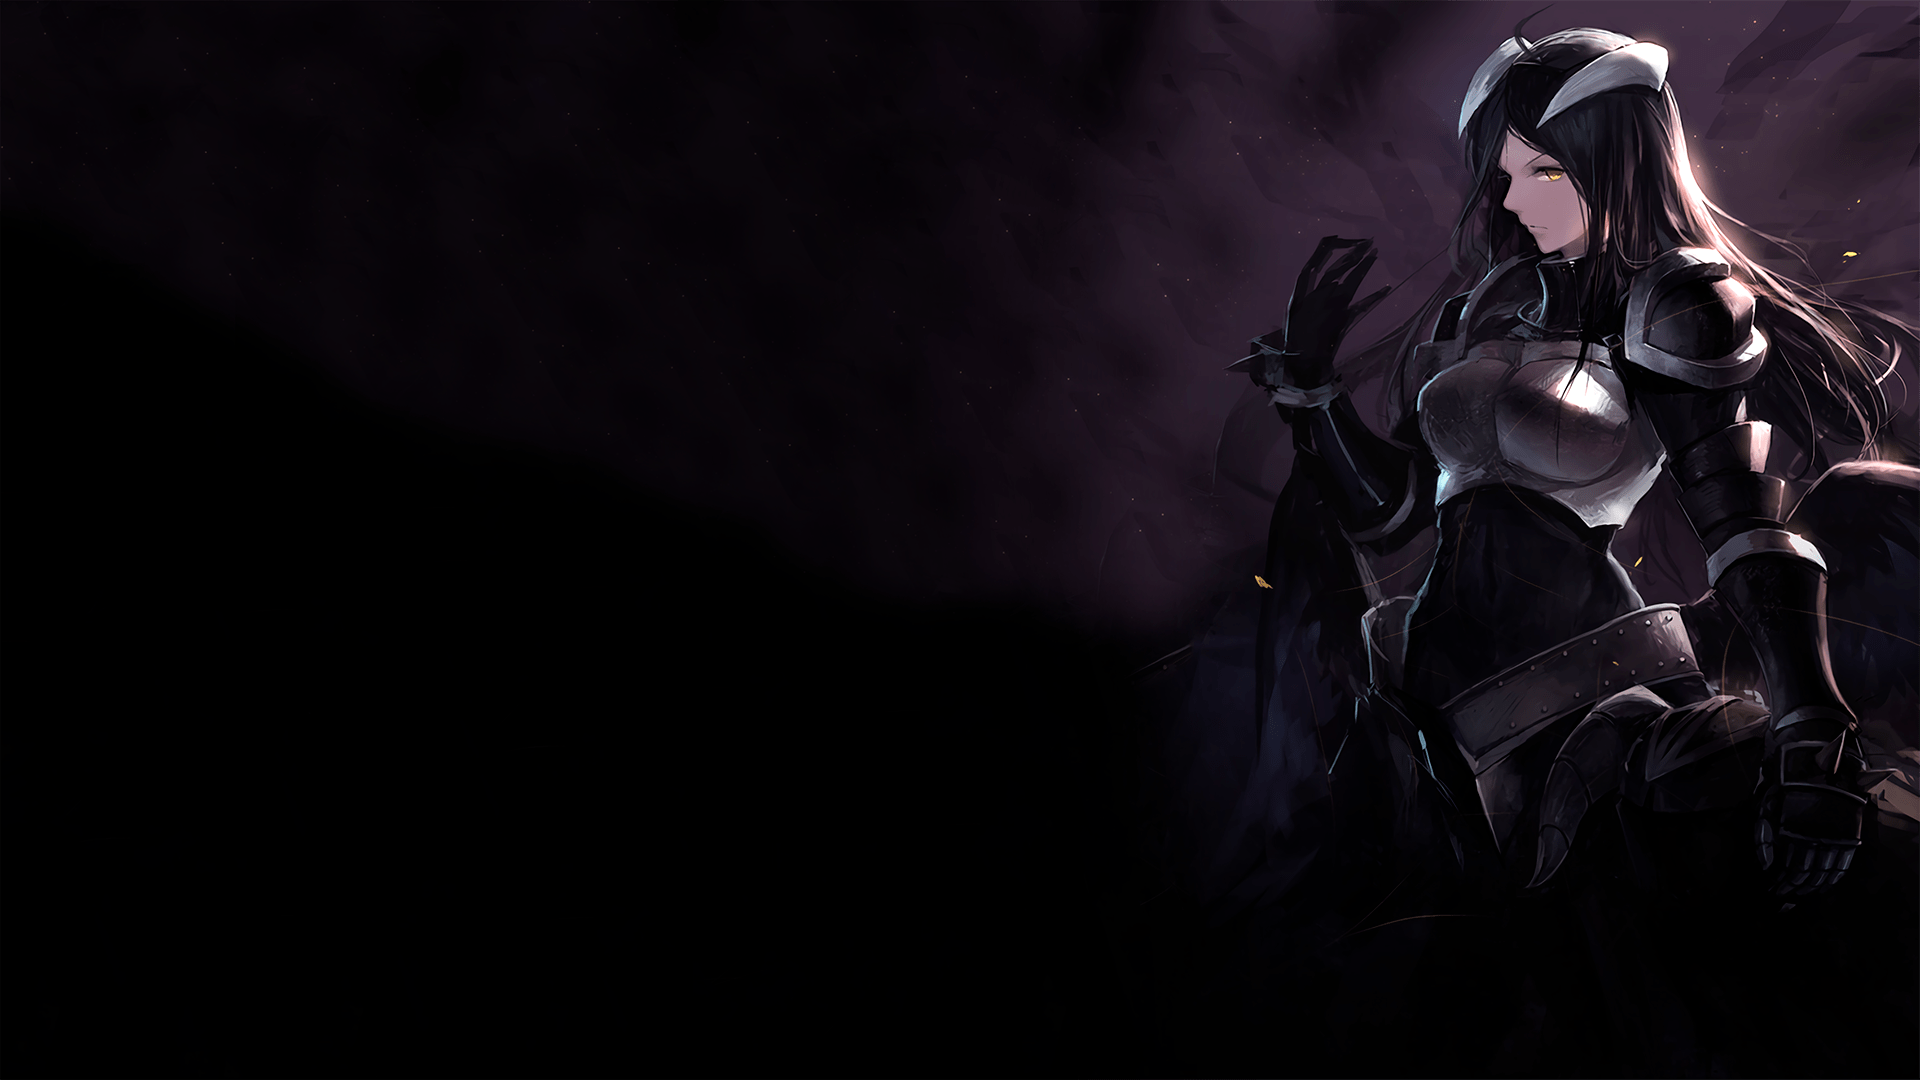 Anime Overlord Albedo HD Wallpaper   Background Image